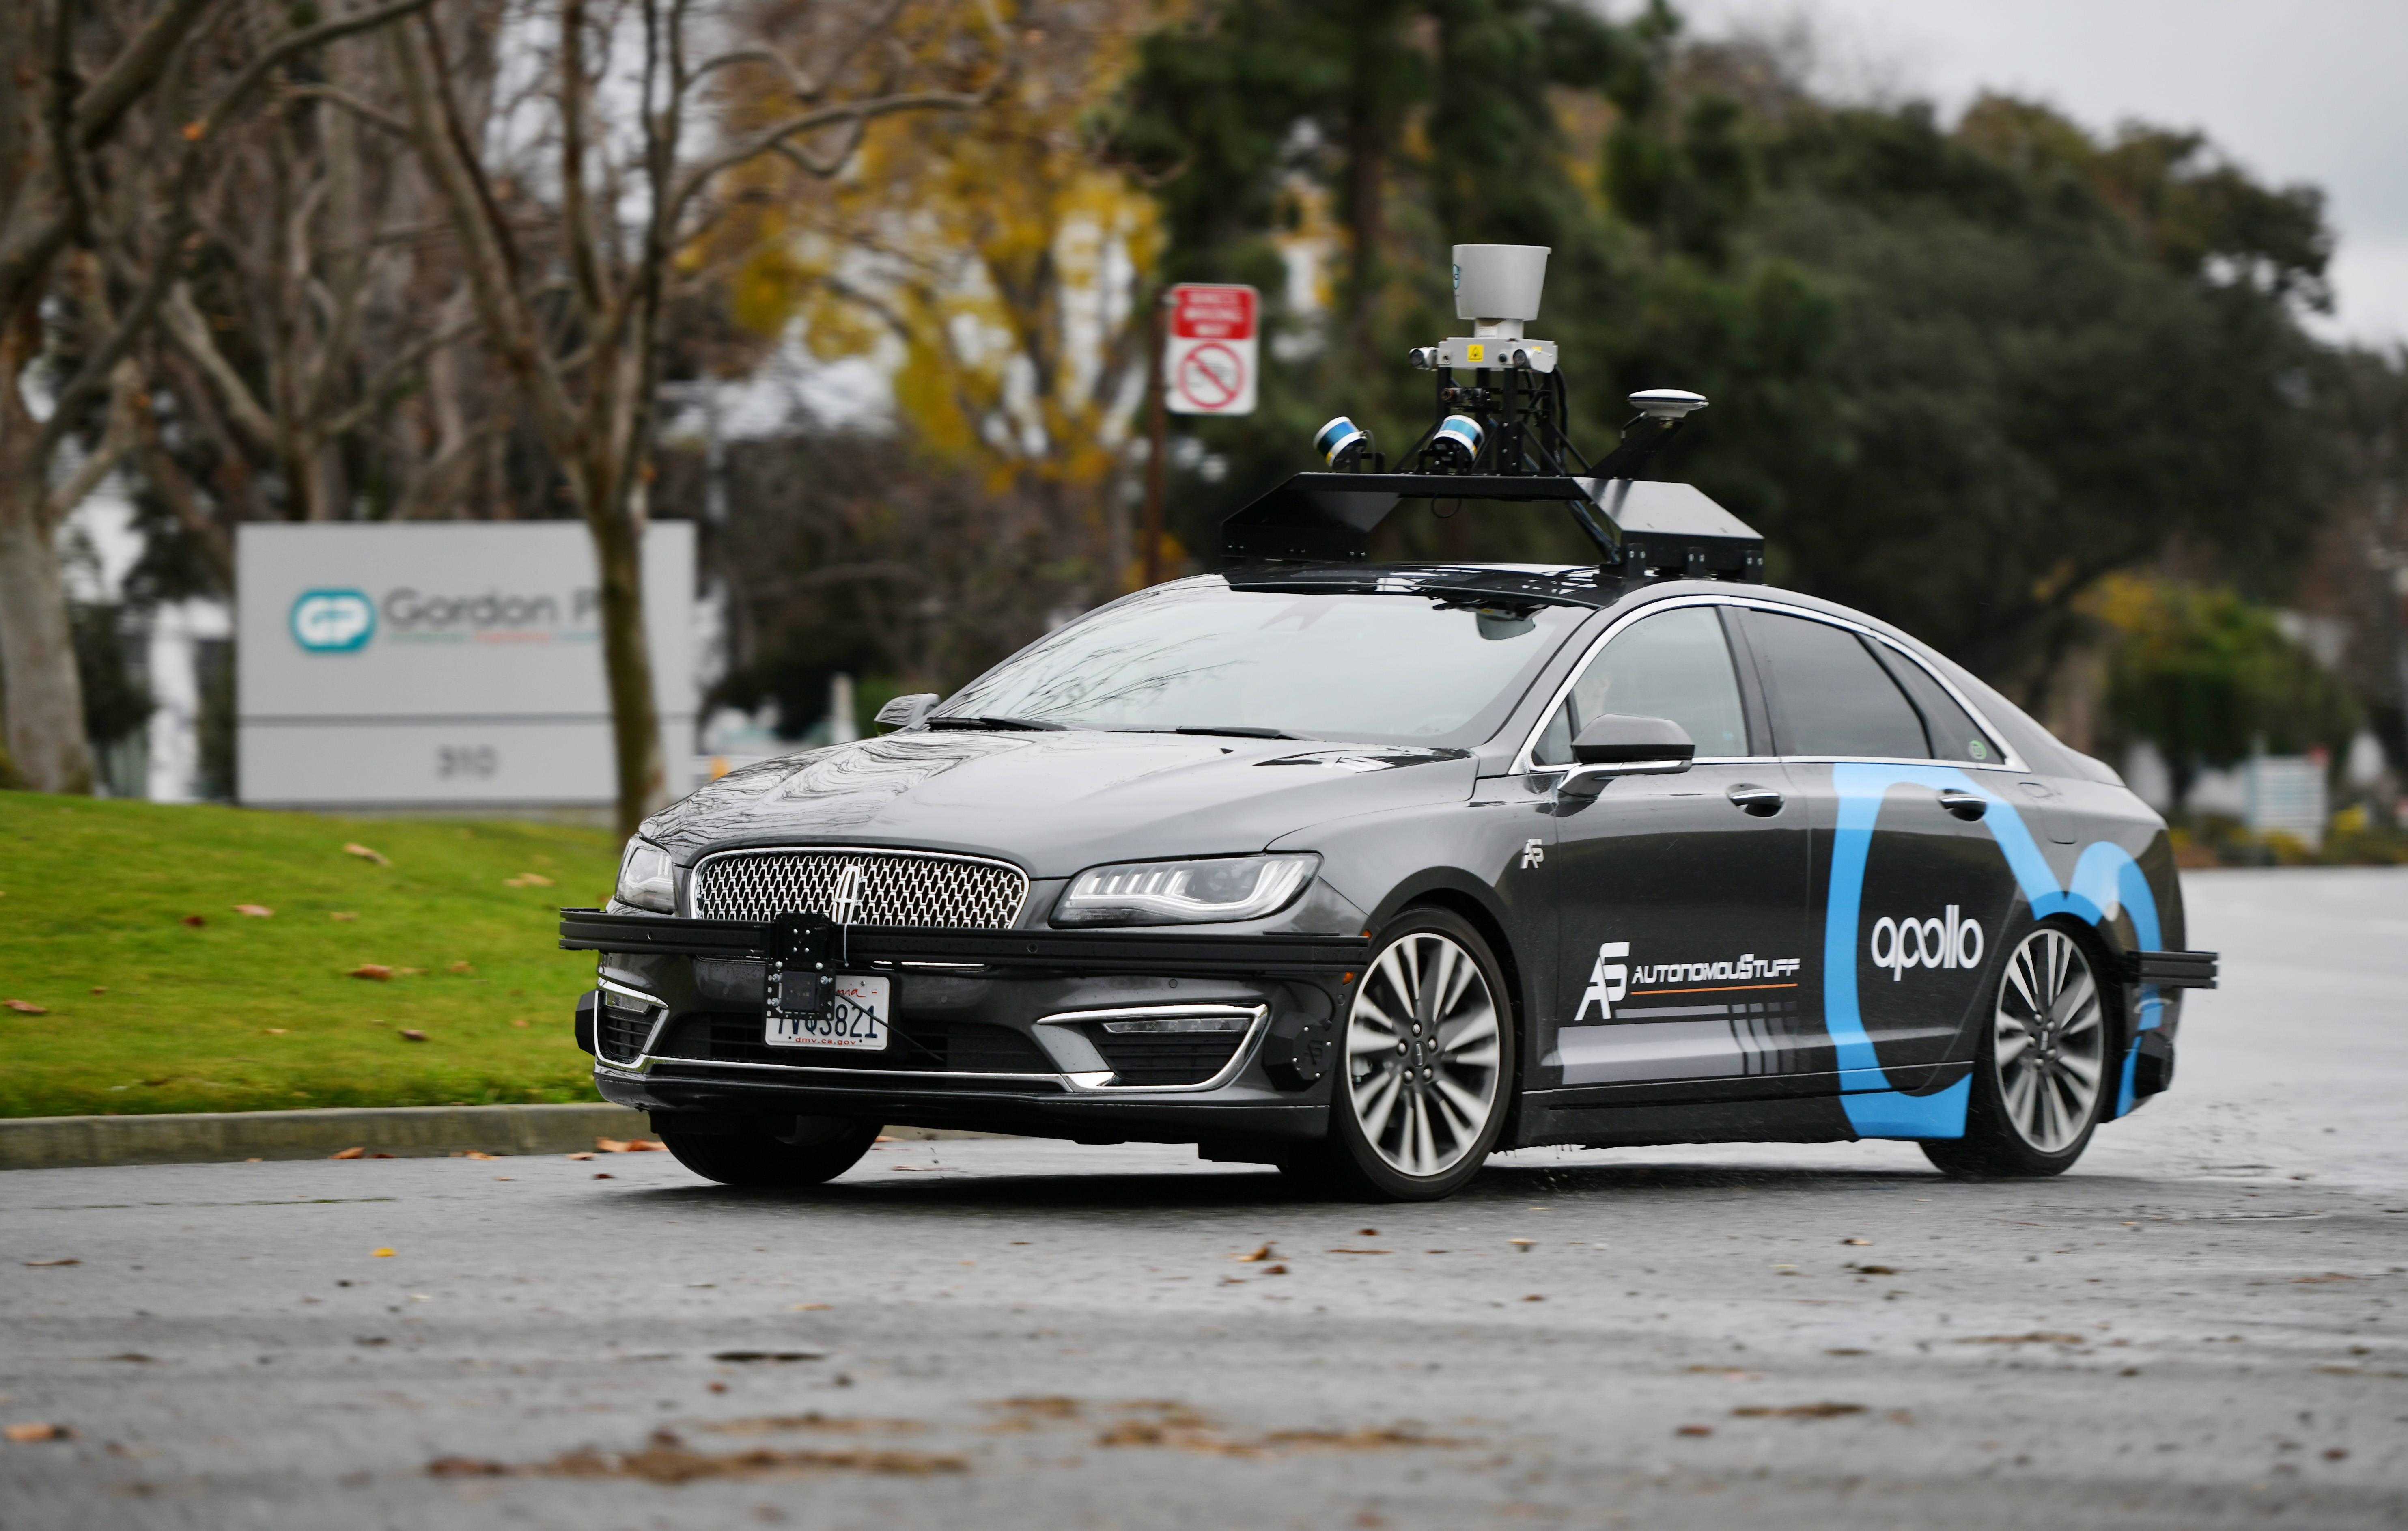 Baidu, NVIDIA and ZF team to drive autonomous vehicles in China